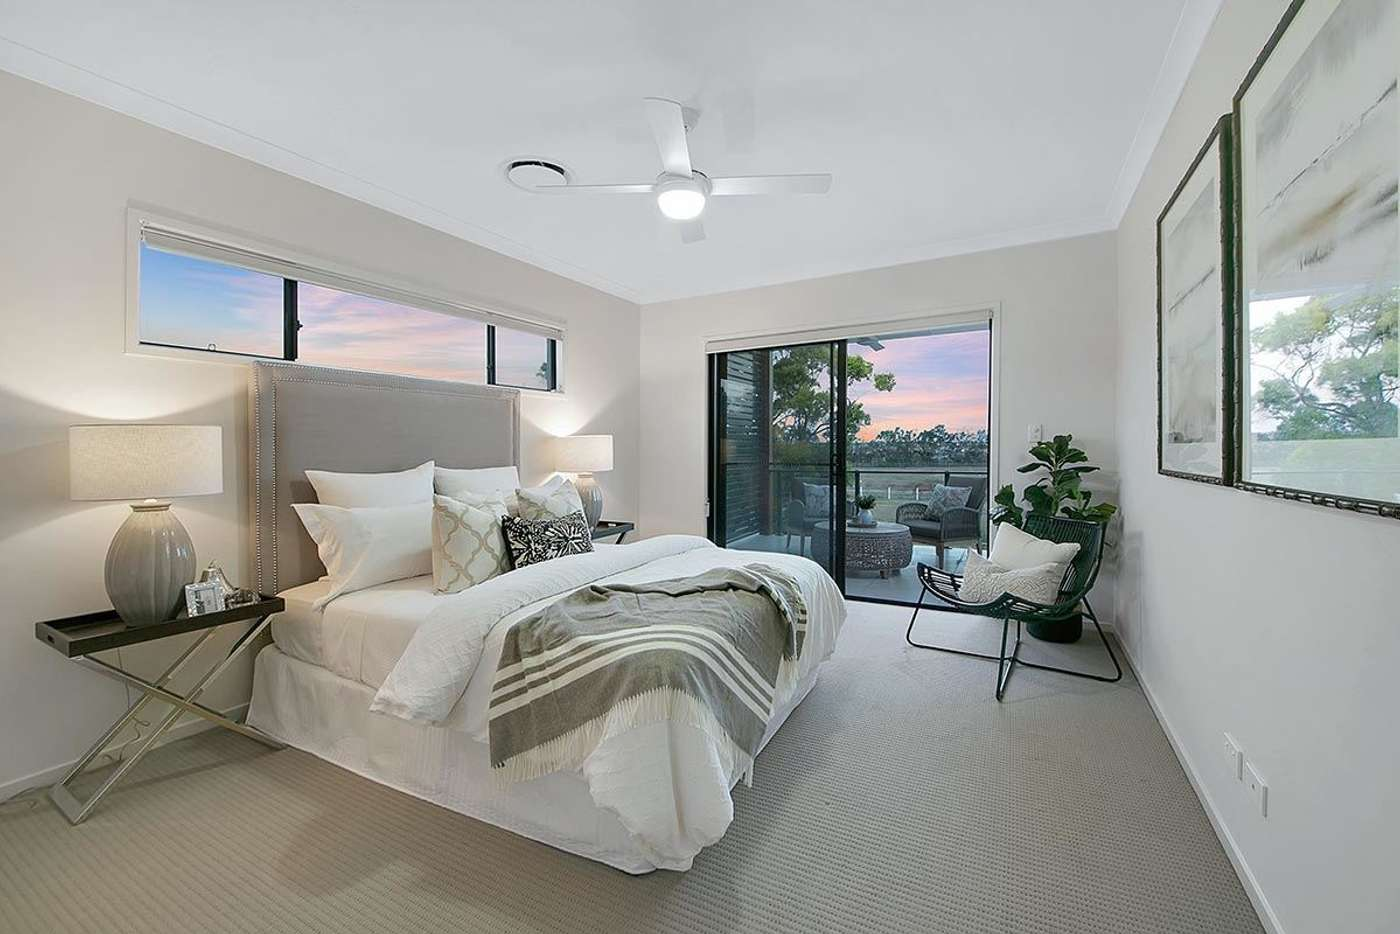 Seventh view of Homely house listing, 33 Ure Street, Hendra QLD 4011